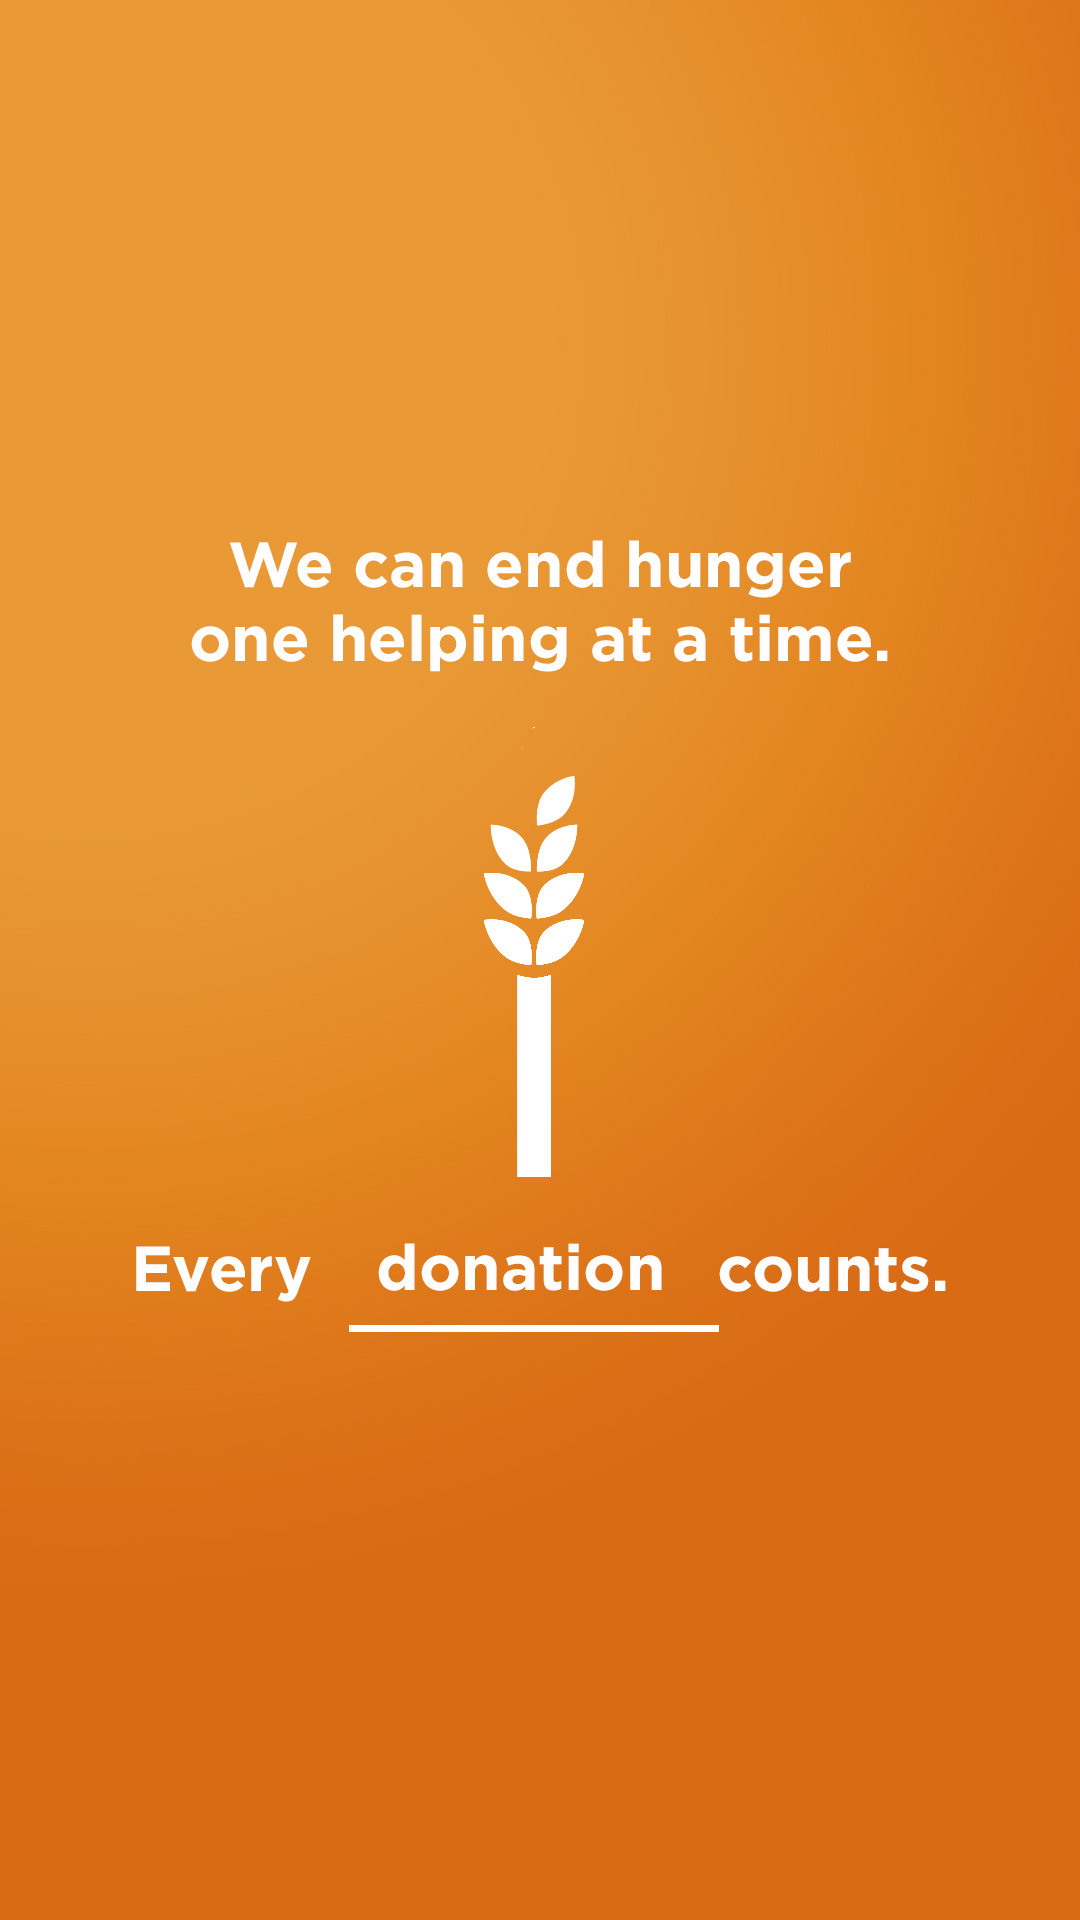 We can end hunger - Donate